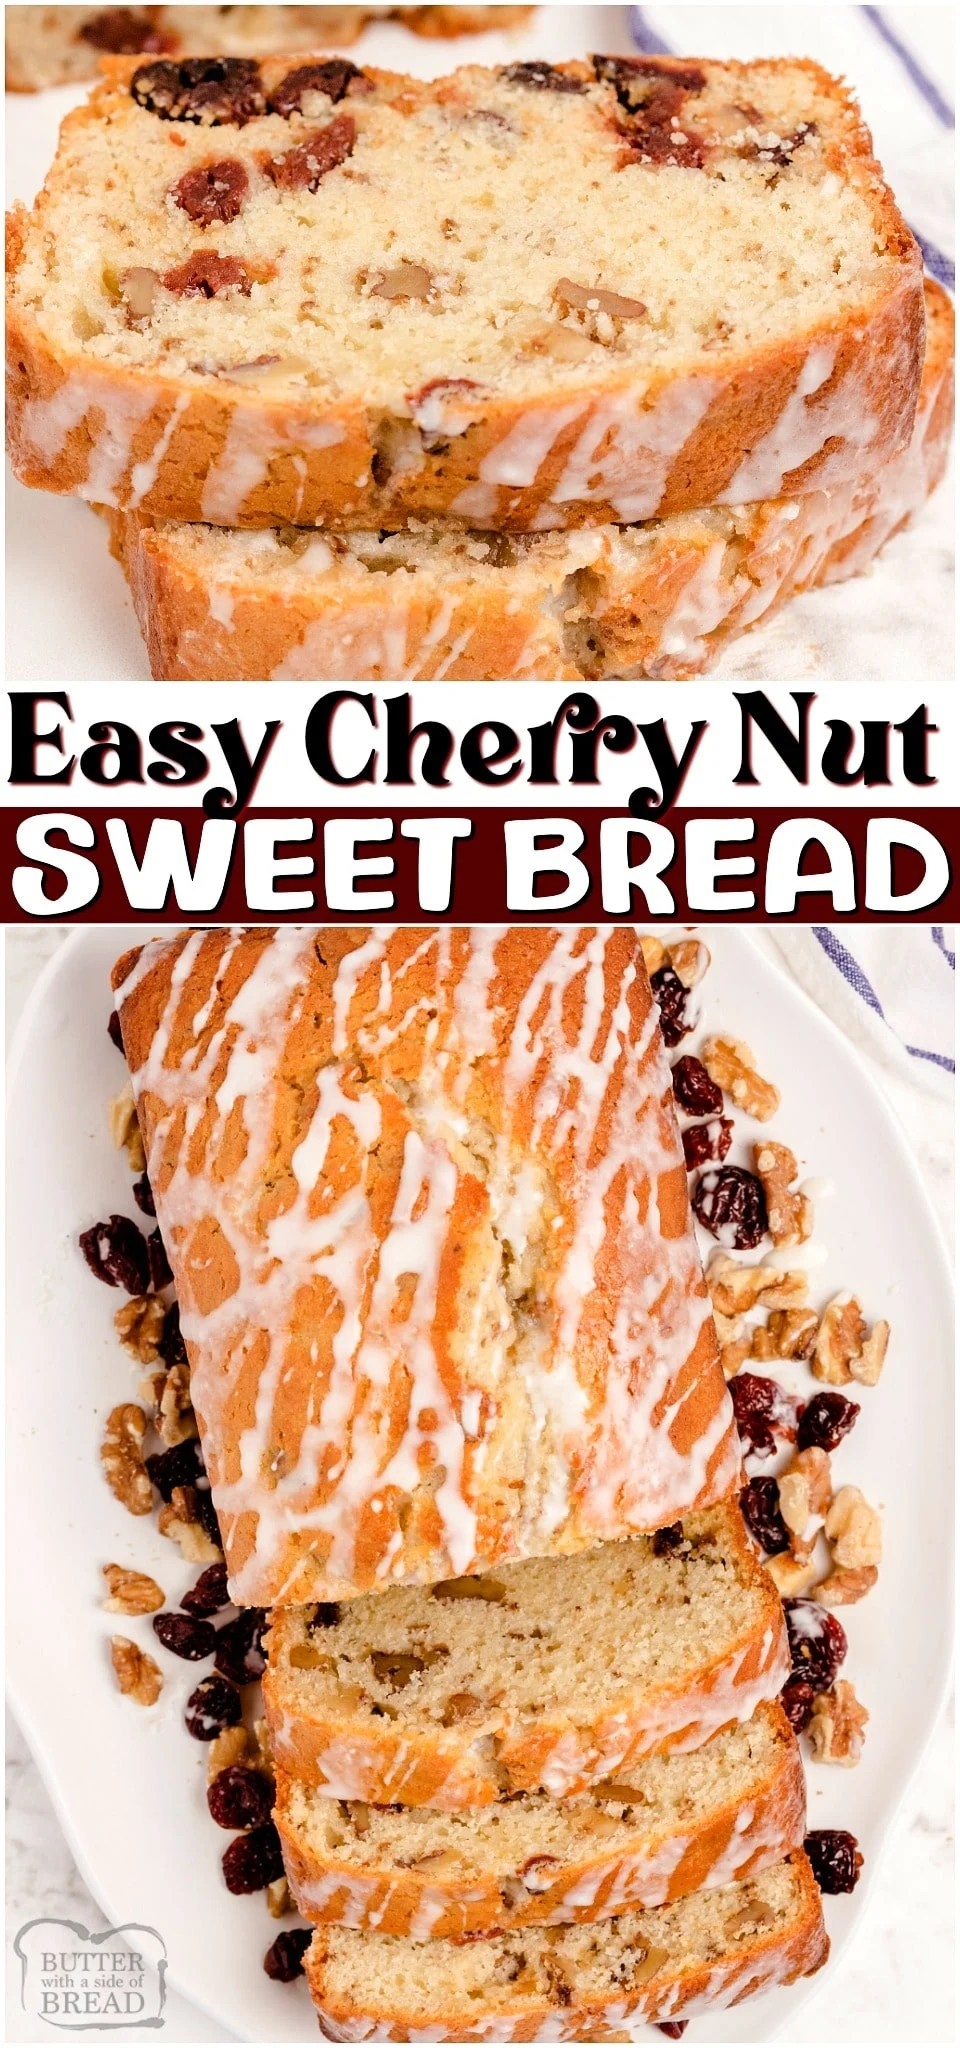 Cherry nut bread is a traditional sweet bread with bright cherry flavor! Lovely cherry quick bread recipe with nuts and a simple vanilla glaze that's perfect for breakfast or a treat.#bread #quickbread #cherry #cherries #baking #easyrecipe from BUTTER WITH A SIDE OF BREAD